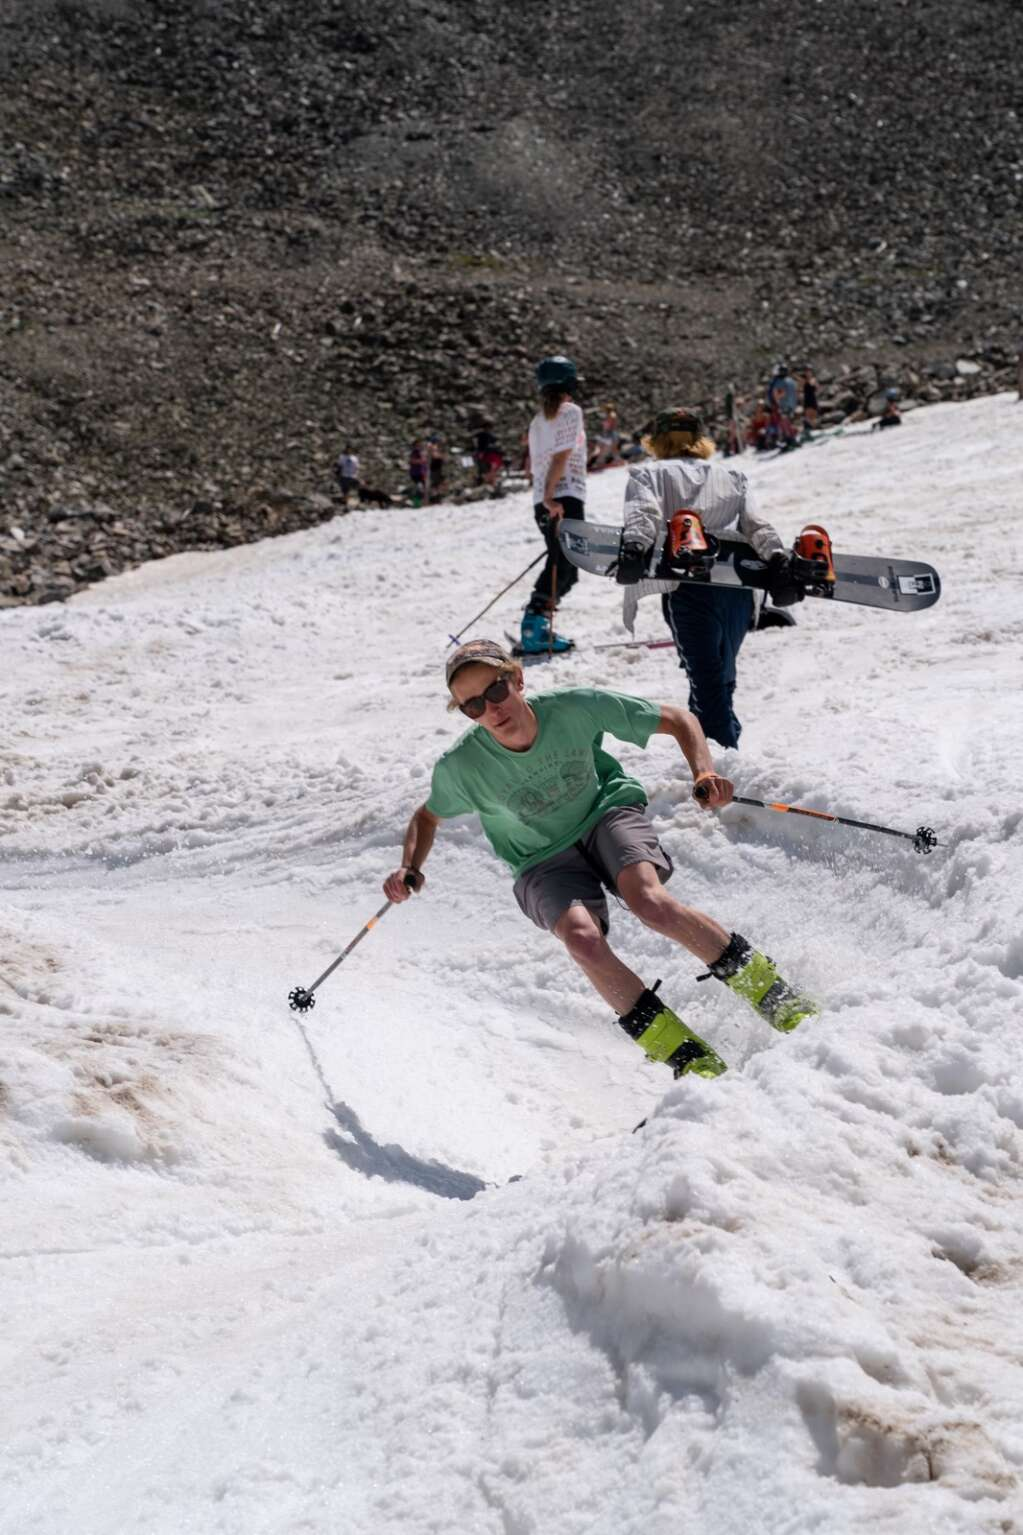 Skiers and riders negotiate the snake run at Fourth of July Bowl on Peak 10 at Sunday's fourth annual Peak 10 Classic. | Photo by Sage Vogt